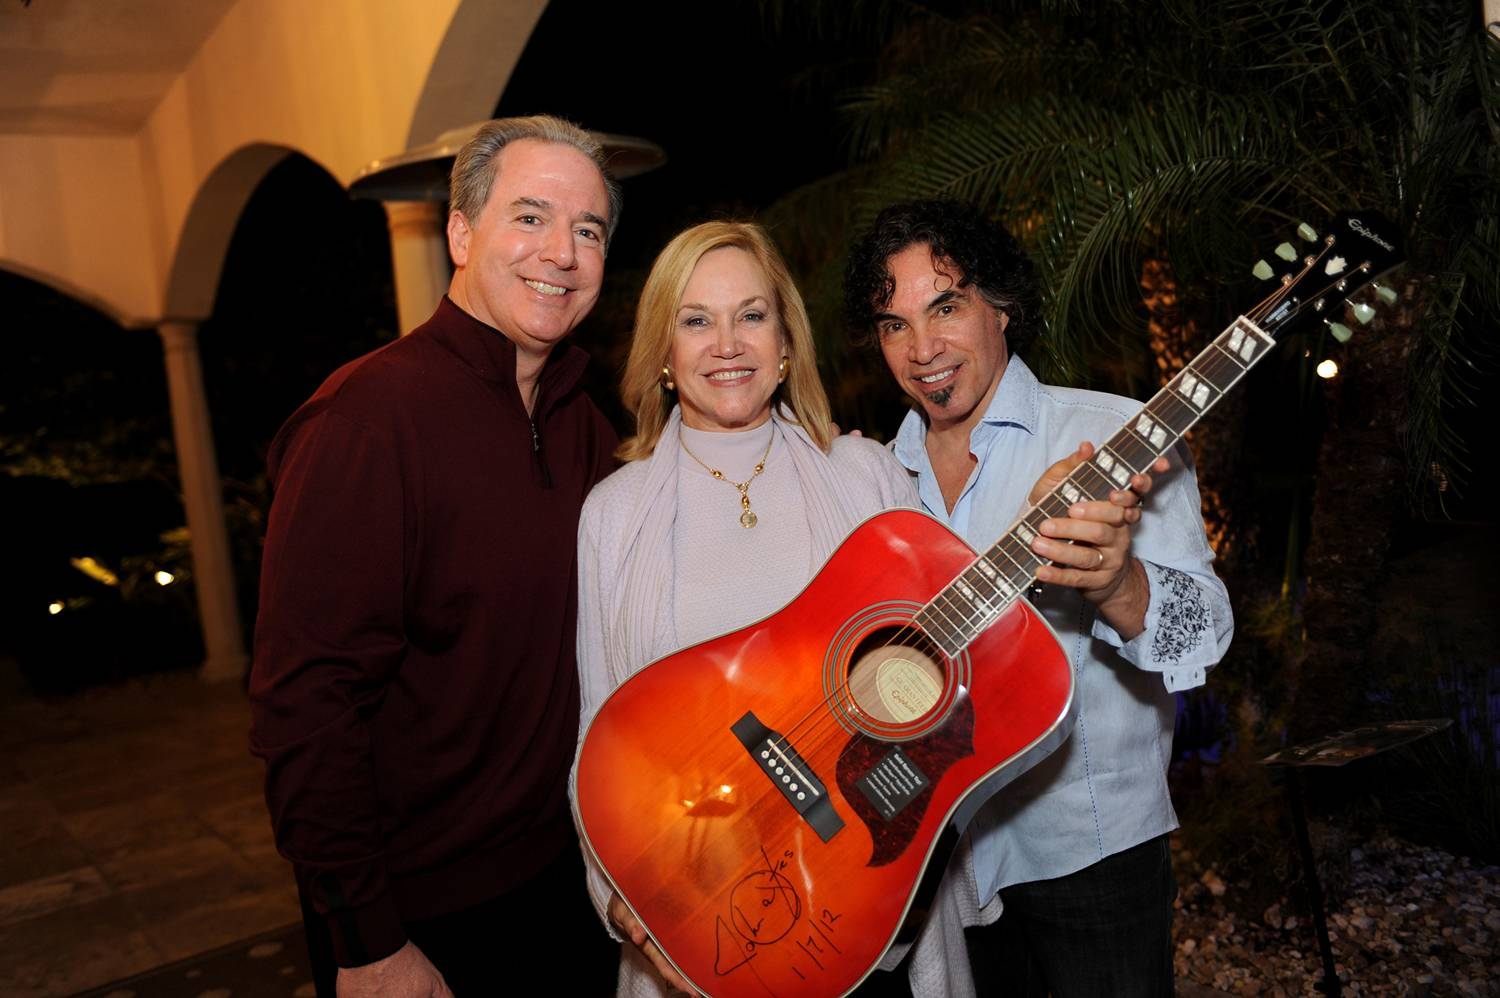 P4- Mike Maroone, Chief Operating Officer of AutoNation, Inc. and his wife Monica Maroone, with John Oates and signed guitar